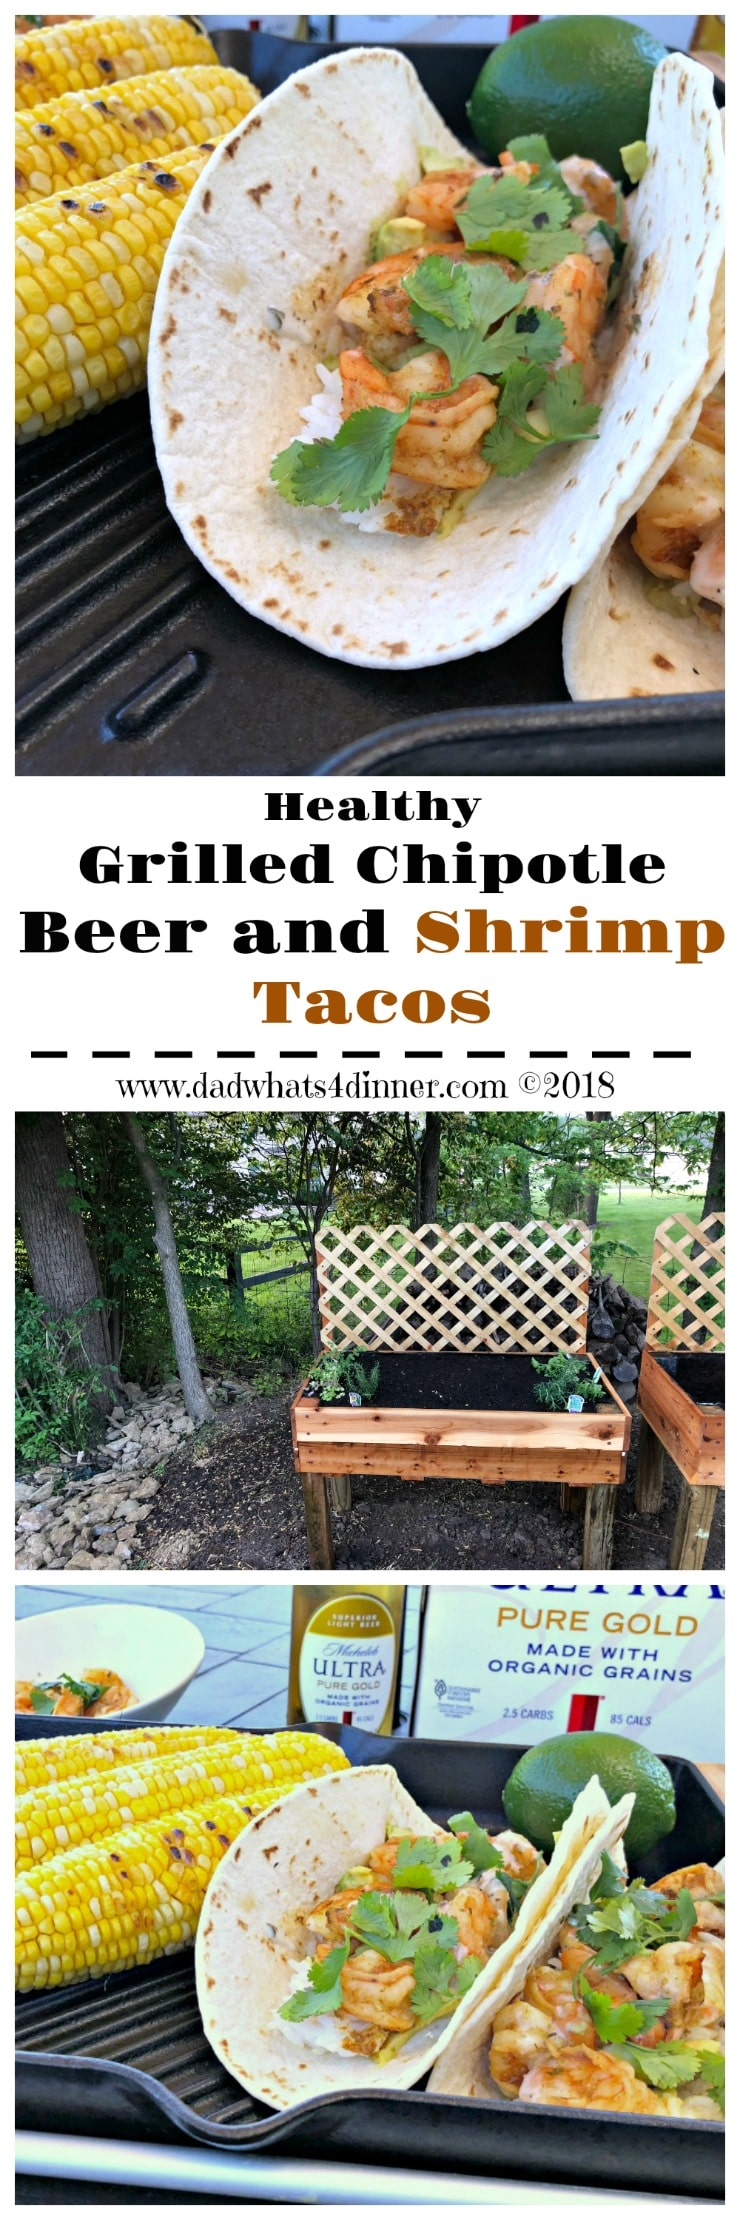 These healthy Grilled Chipotle Beer and Shrimp Tacos with avocado and rice are full of smokey spicy flavor and perfect for a light lunch when working outdoors in the summer. www.dadwhats4dinner #ad #Grilled #shrimp #grilling #foilpackcooking #healthy #avocado #beer #liveULTRA